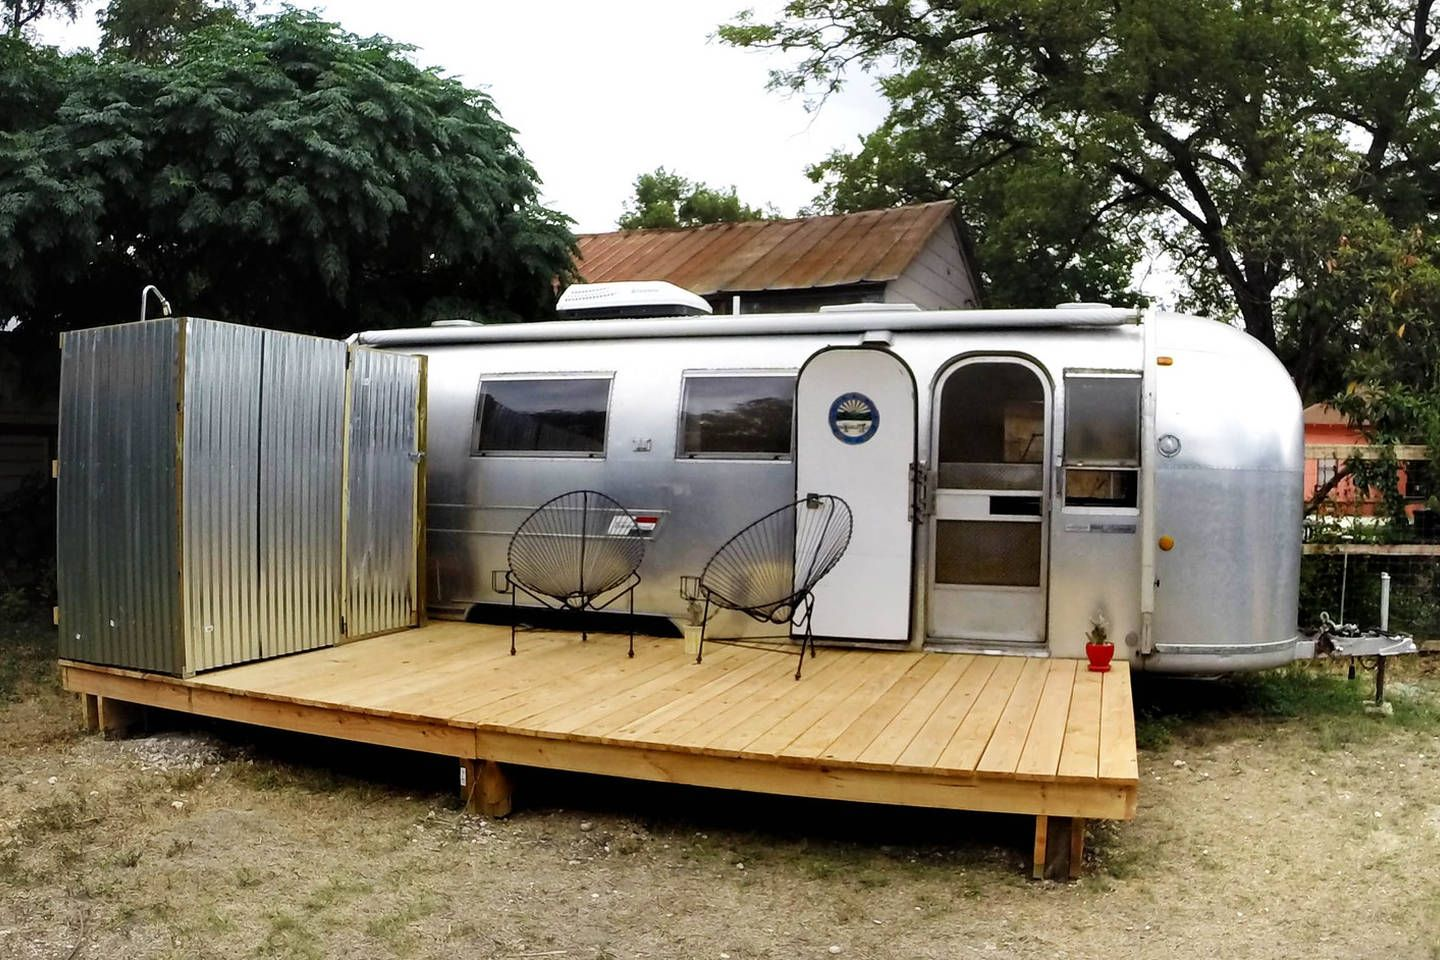 Airstream Travel Trailers >> Newly Renovated Airstream In Gated Fenced In Backyard Of Home In